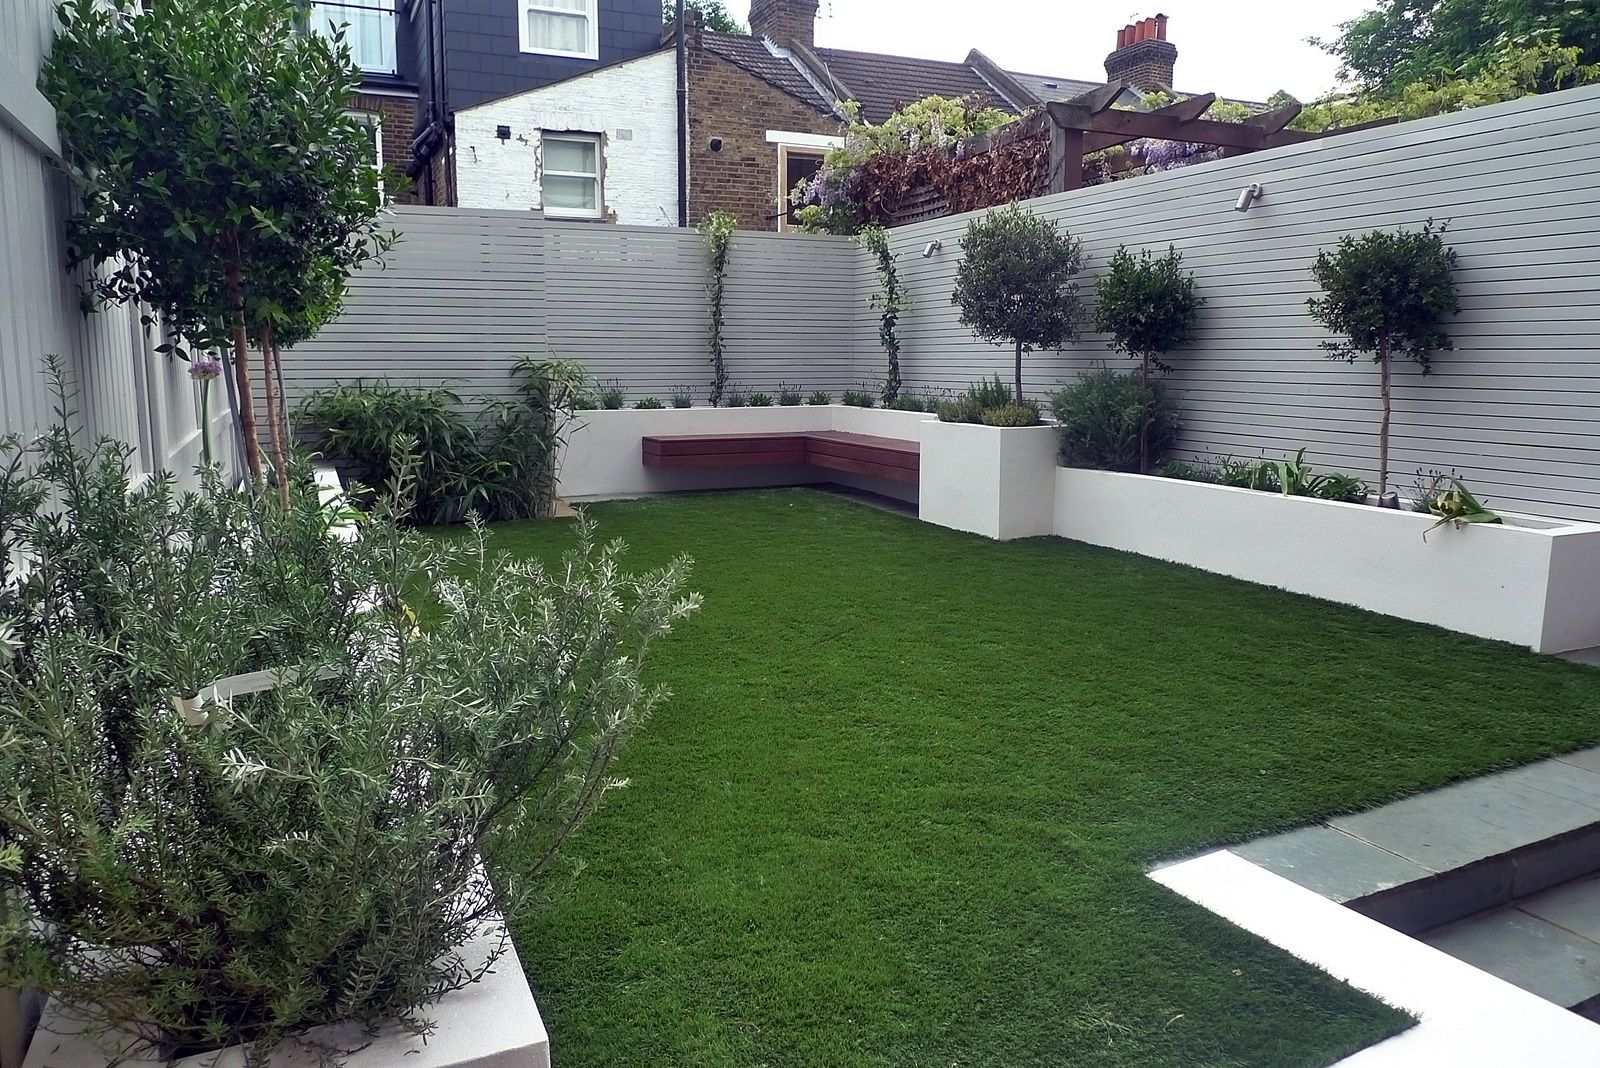 Superieur Modern Garden Design Ideas London 2016